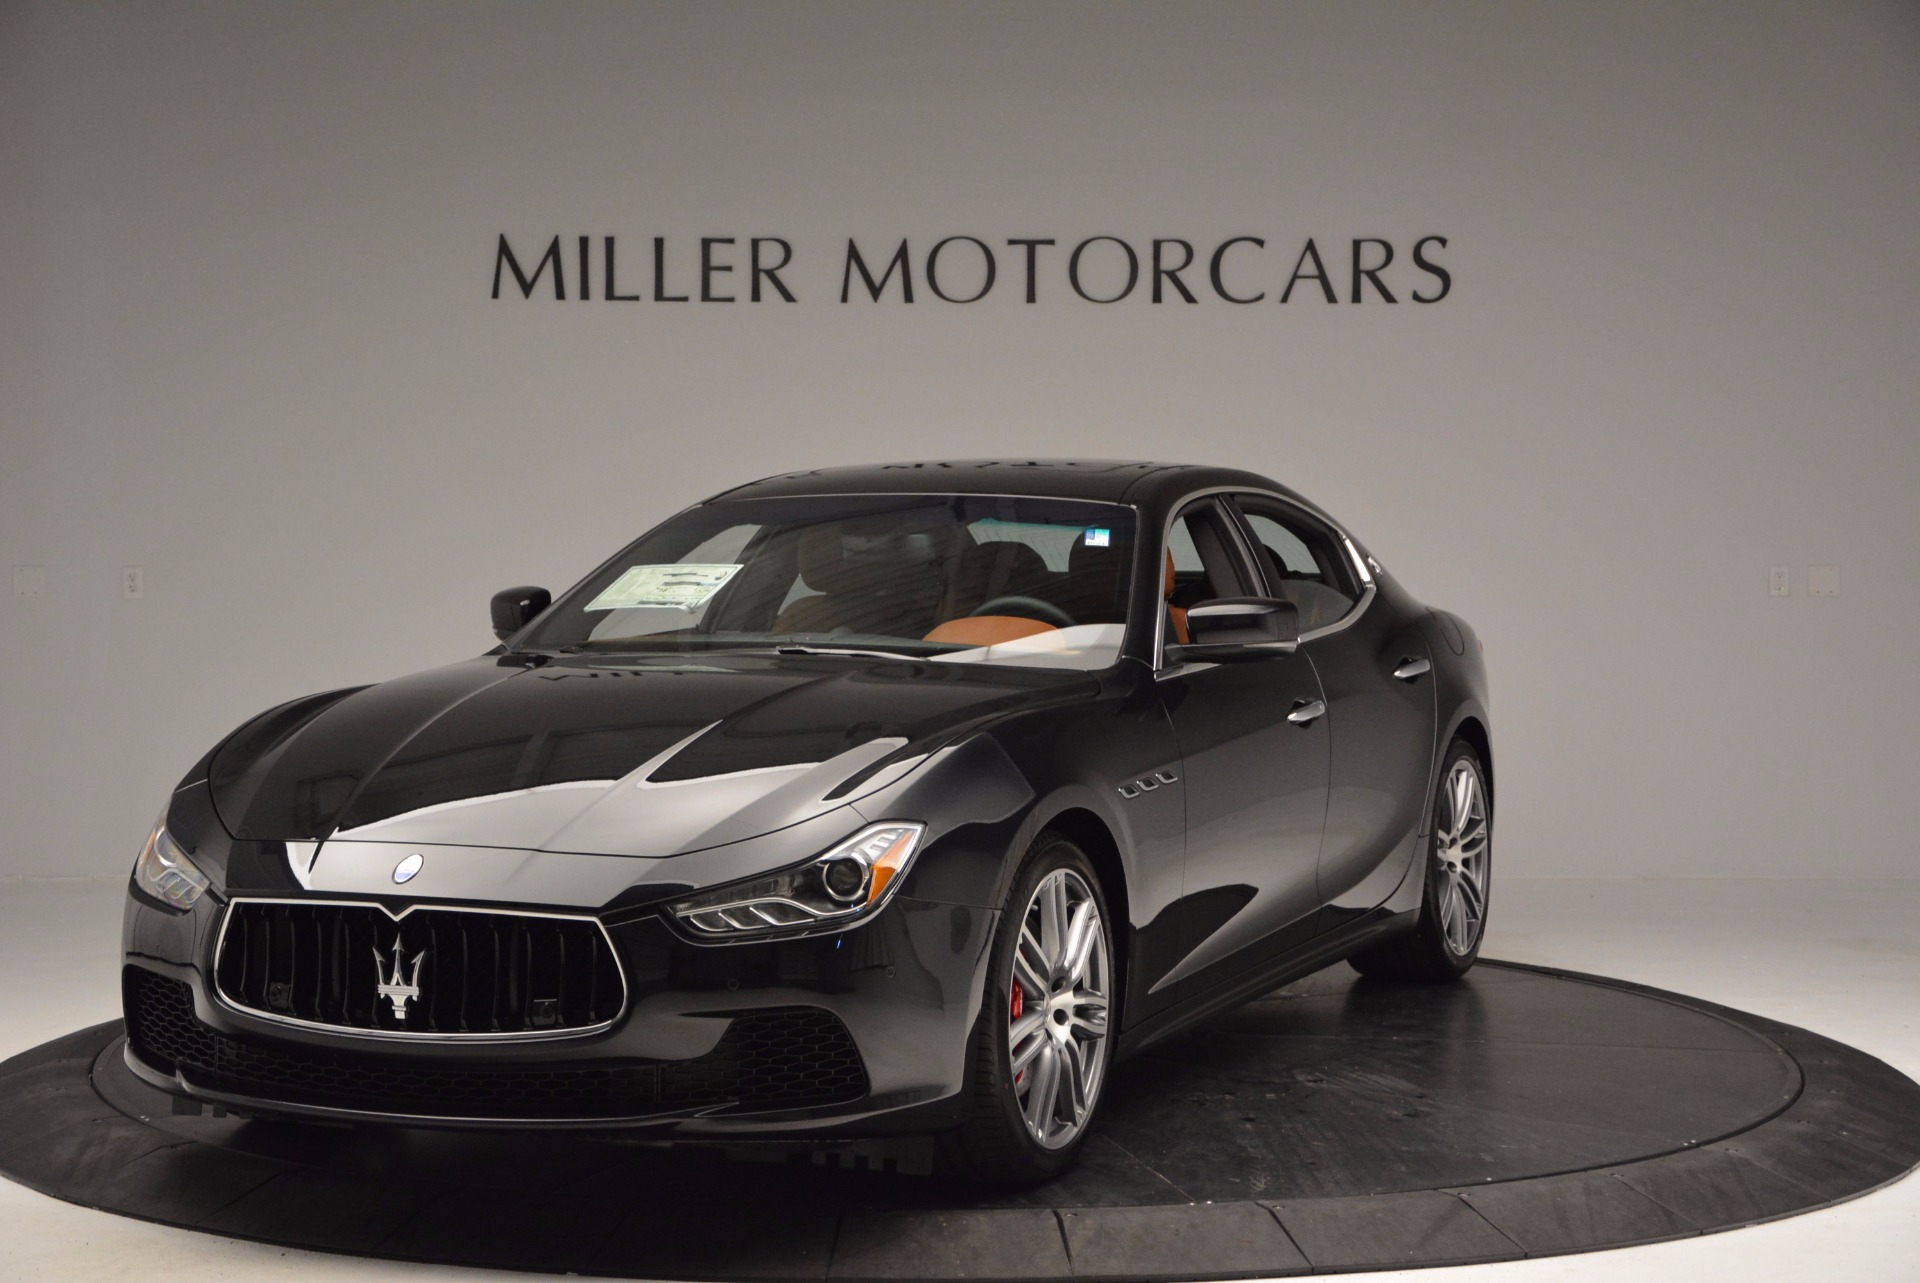 Used 2014 Maserati Ghibli S Q4 For Sale In Greenwich, CT. Alfa Romeo of Greenwich, 7281 1587_main